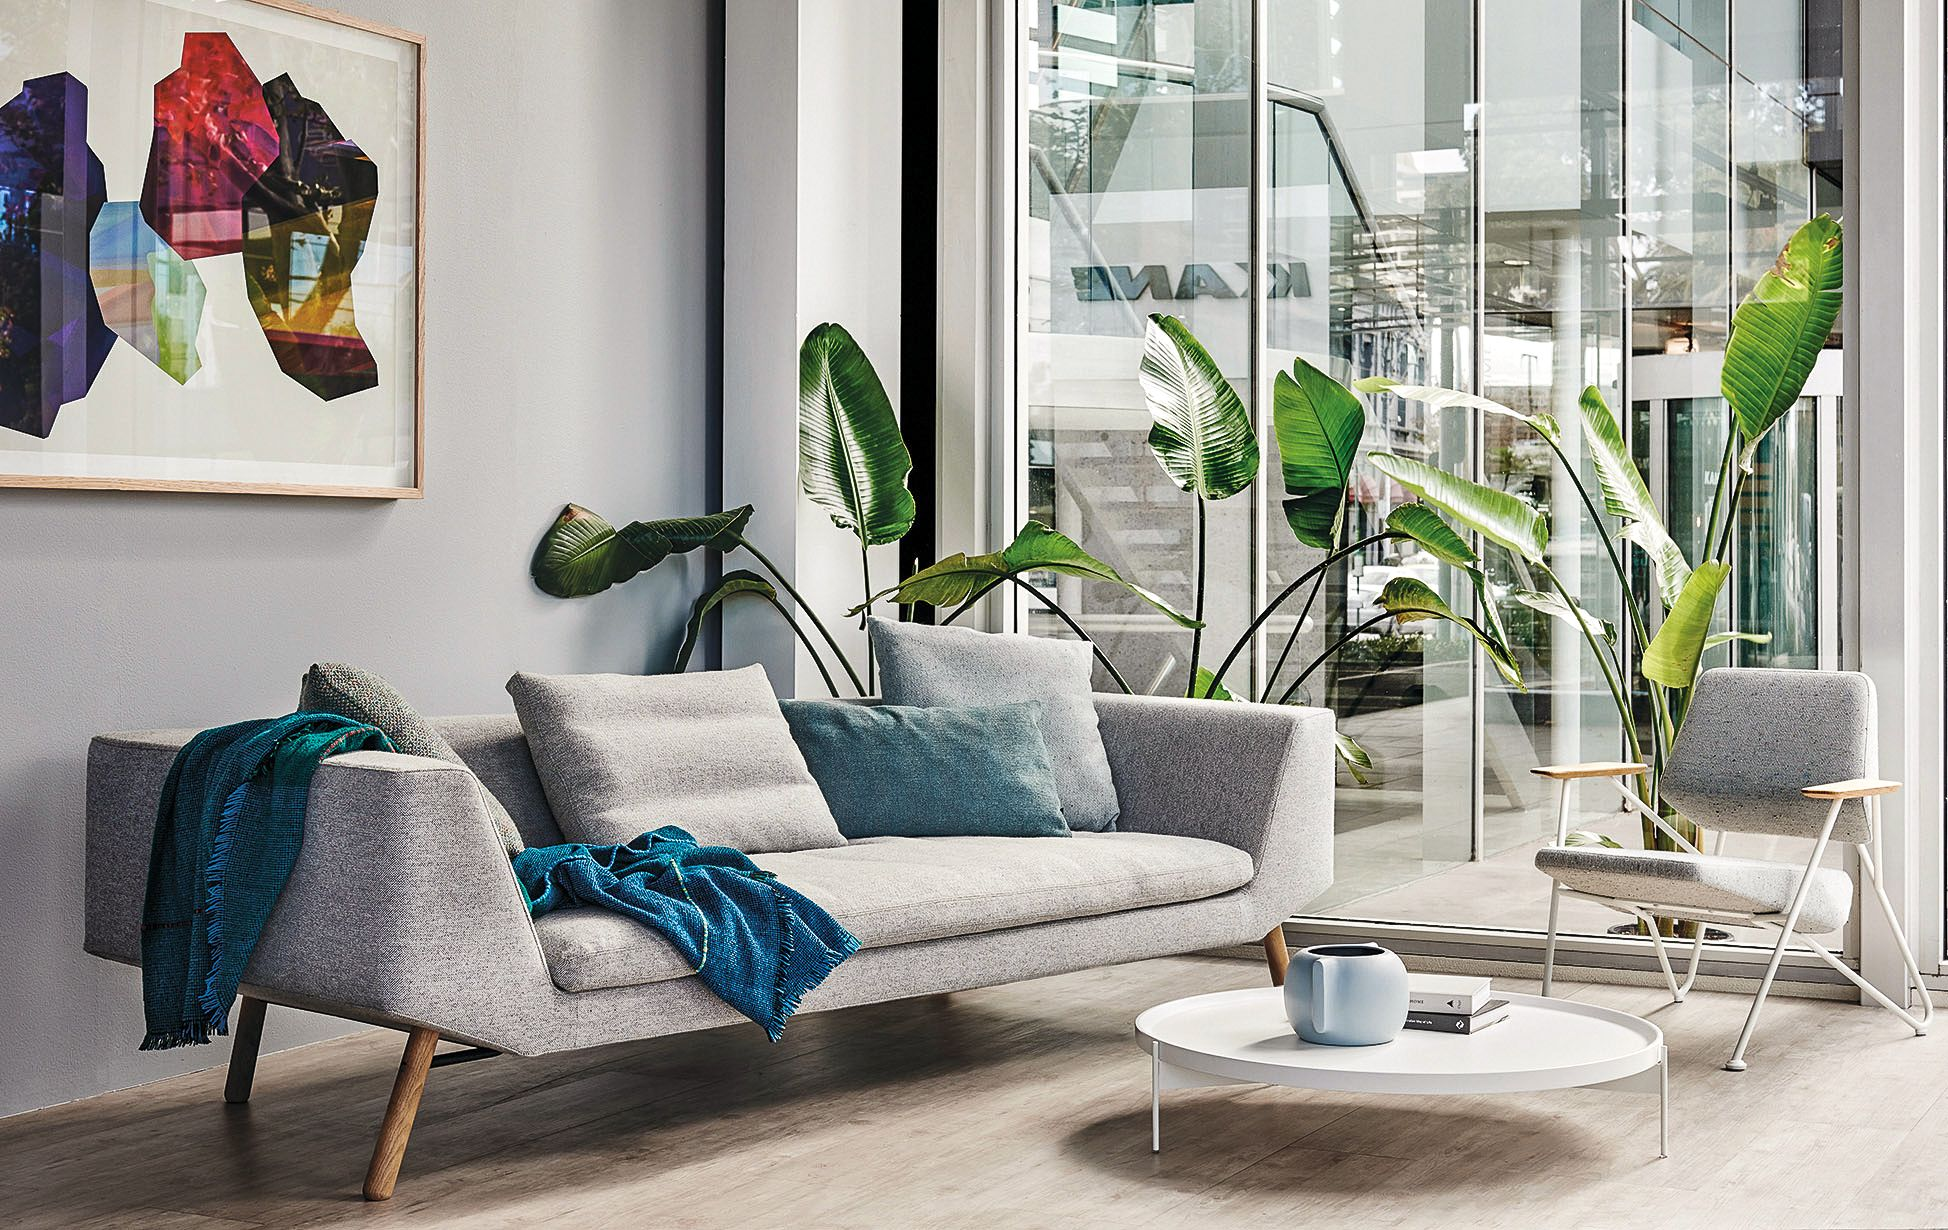 Combine sofa is a seating system of reduced form